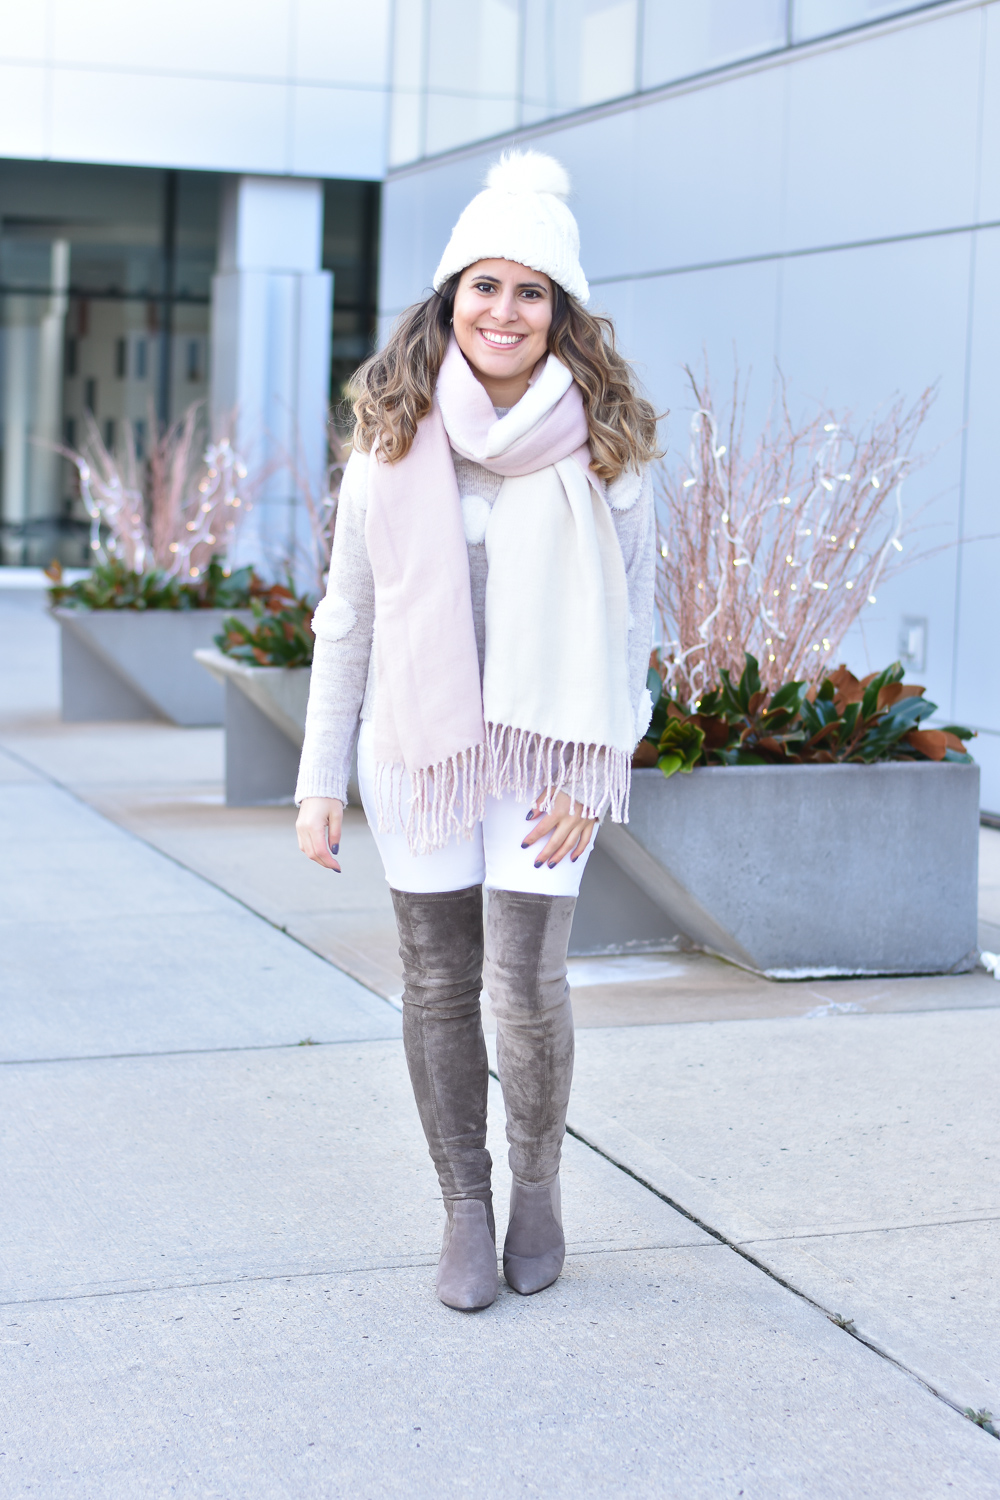 How to Style White Jeans in the Winter